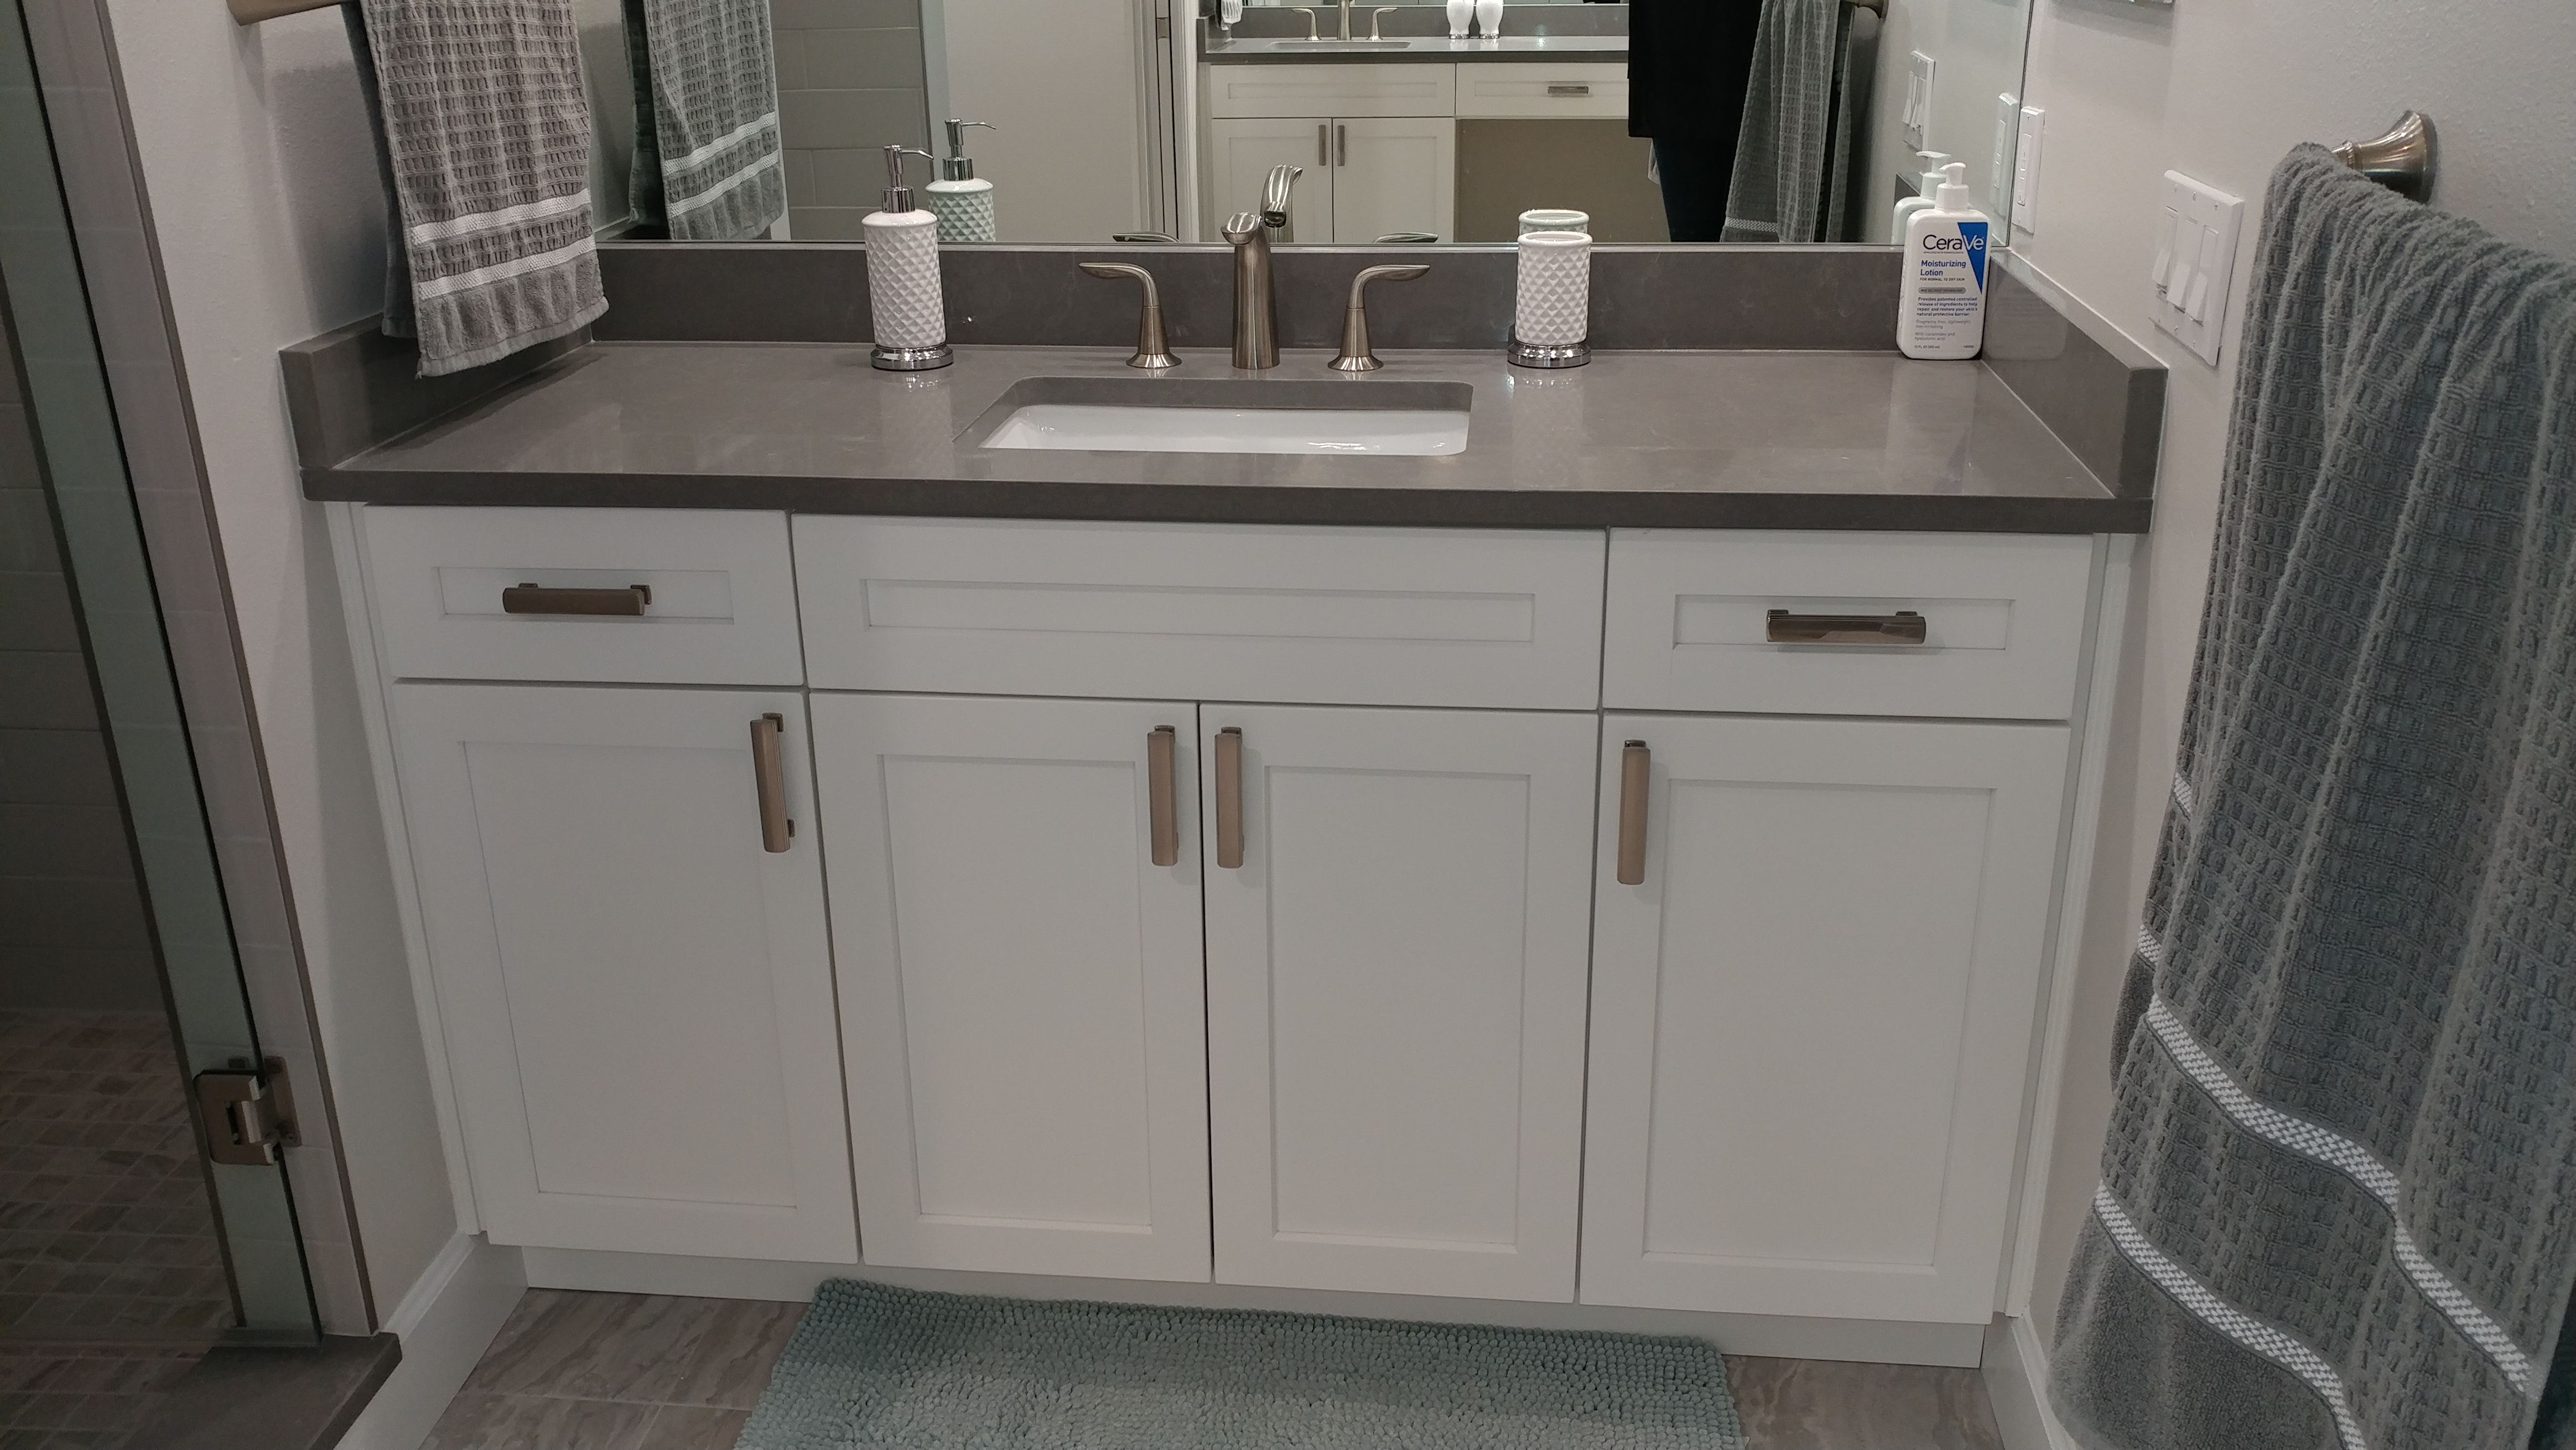 The Master Bathroom Quot His Quot Vanity Has White Shaker Cabinets